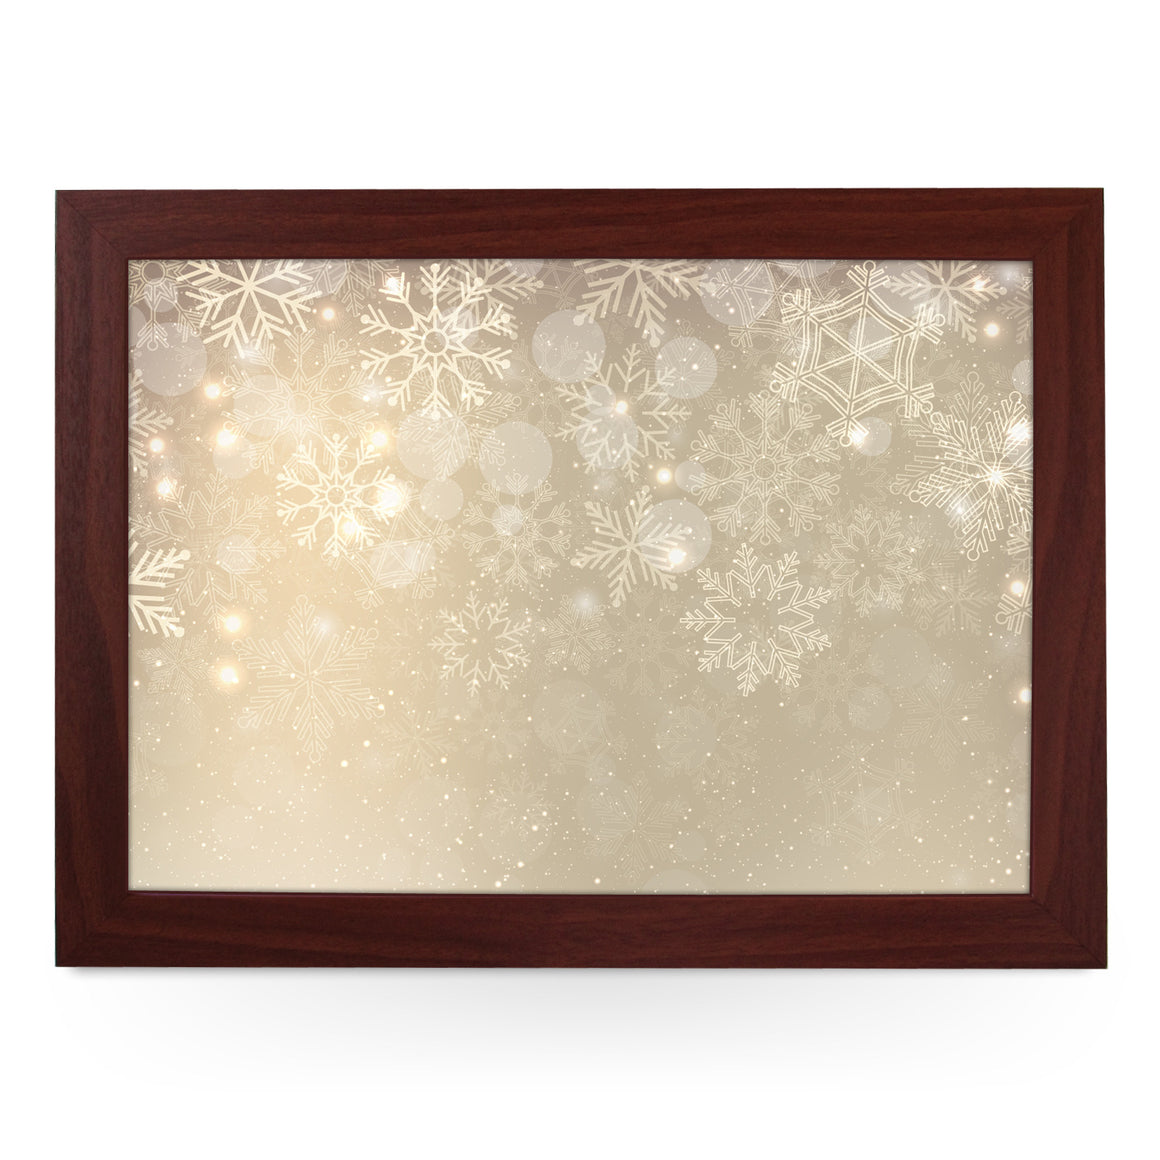 Golden Sparkly Snowflakes Lap Tray - L0568